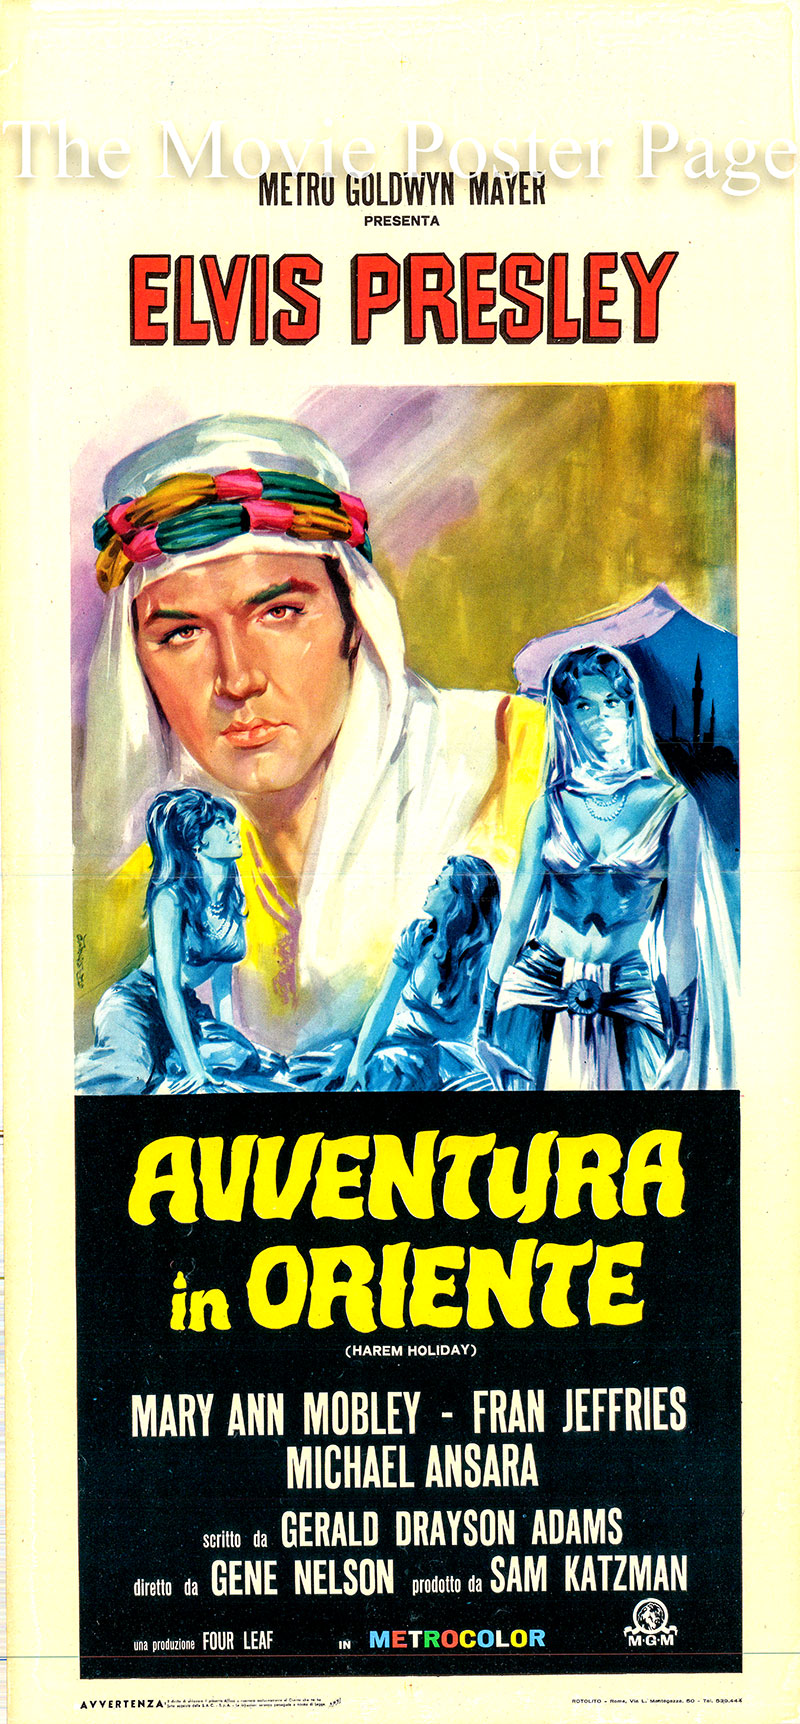 Pictured is an Italian locandina promotional poster for the 1965 Gene Nelson film Harem Holiday starring Elvis Presley as Johnny Tyronne.